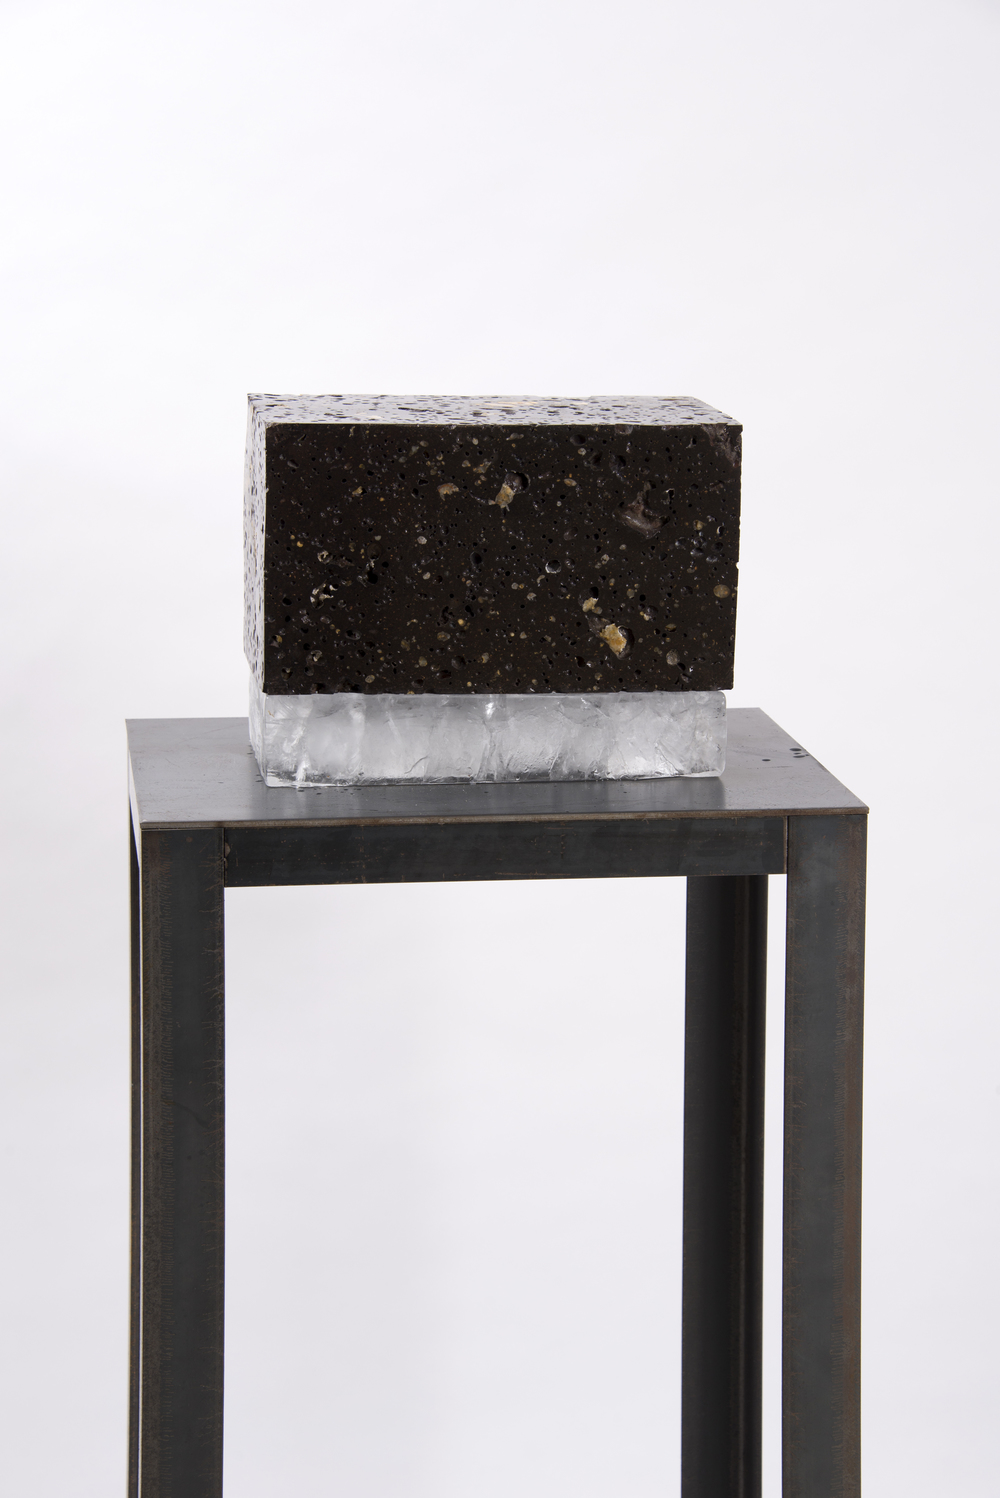 'Untitled', (volcanic rock and ice), 23 cm x 30cm x 16cm.     I'm drawn towards the brief relationship of composure the two materials hold, wilst in there very nature untrue.